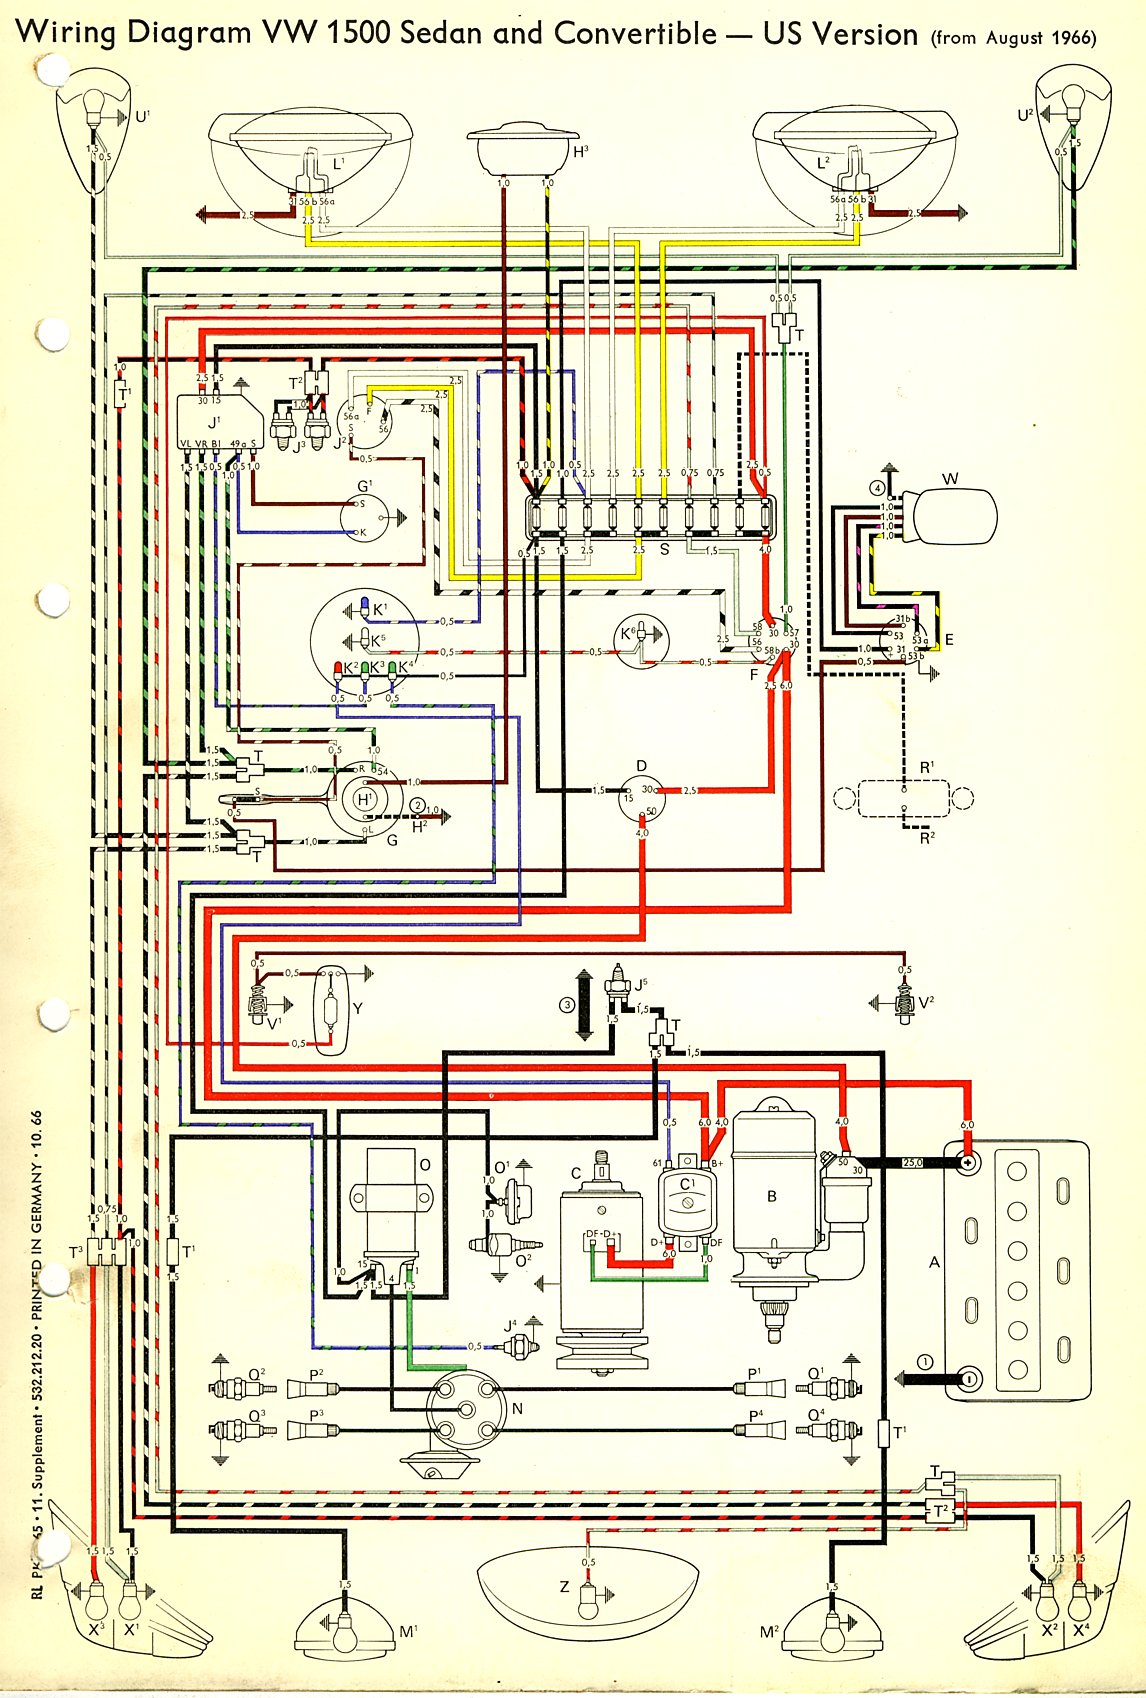 1974 Vw Bus Alternator Wiring Diagram Schemes Volkswagen Starting Know About U2022 Speedometer